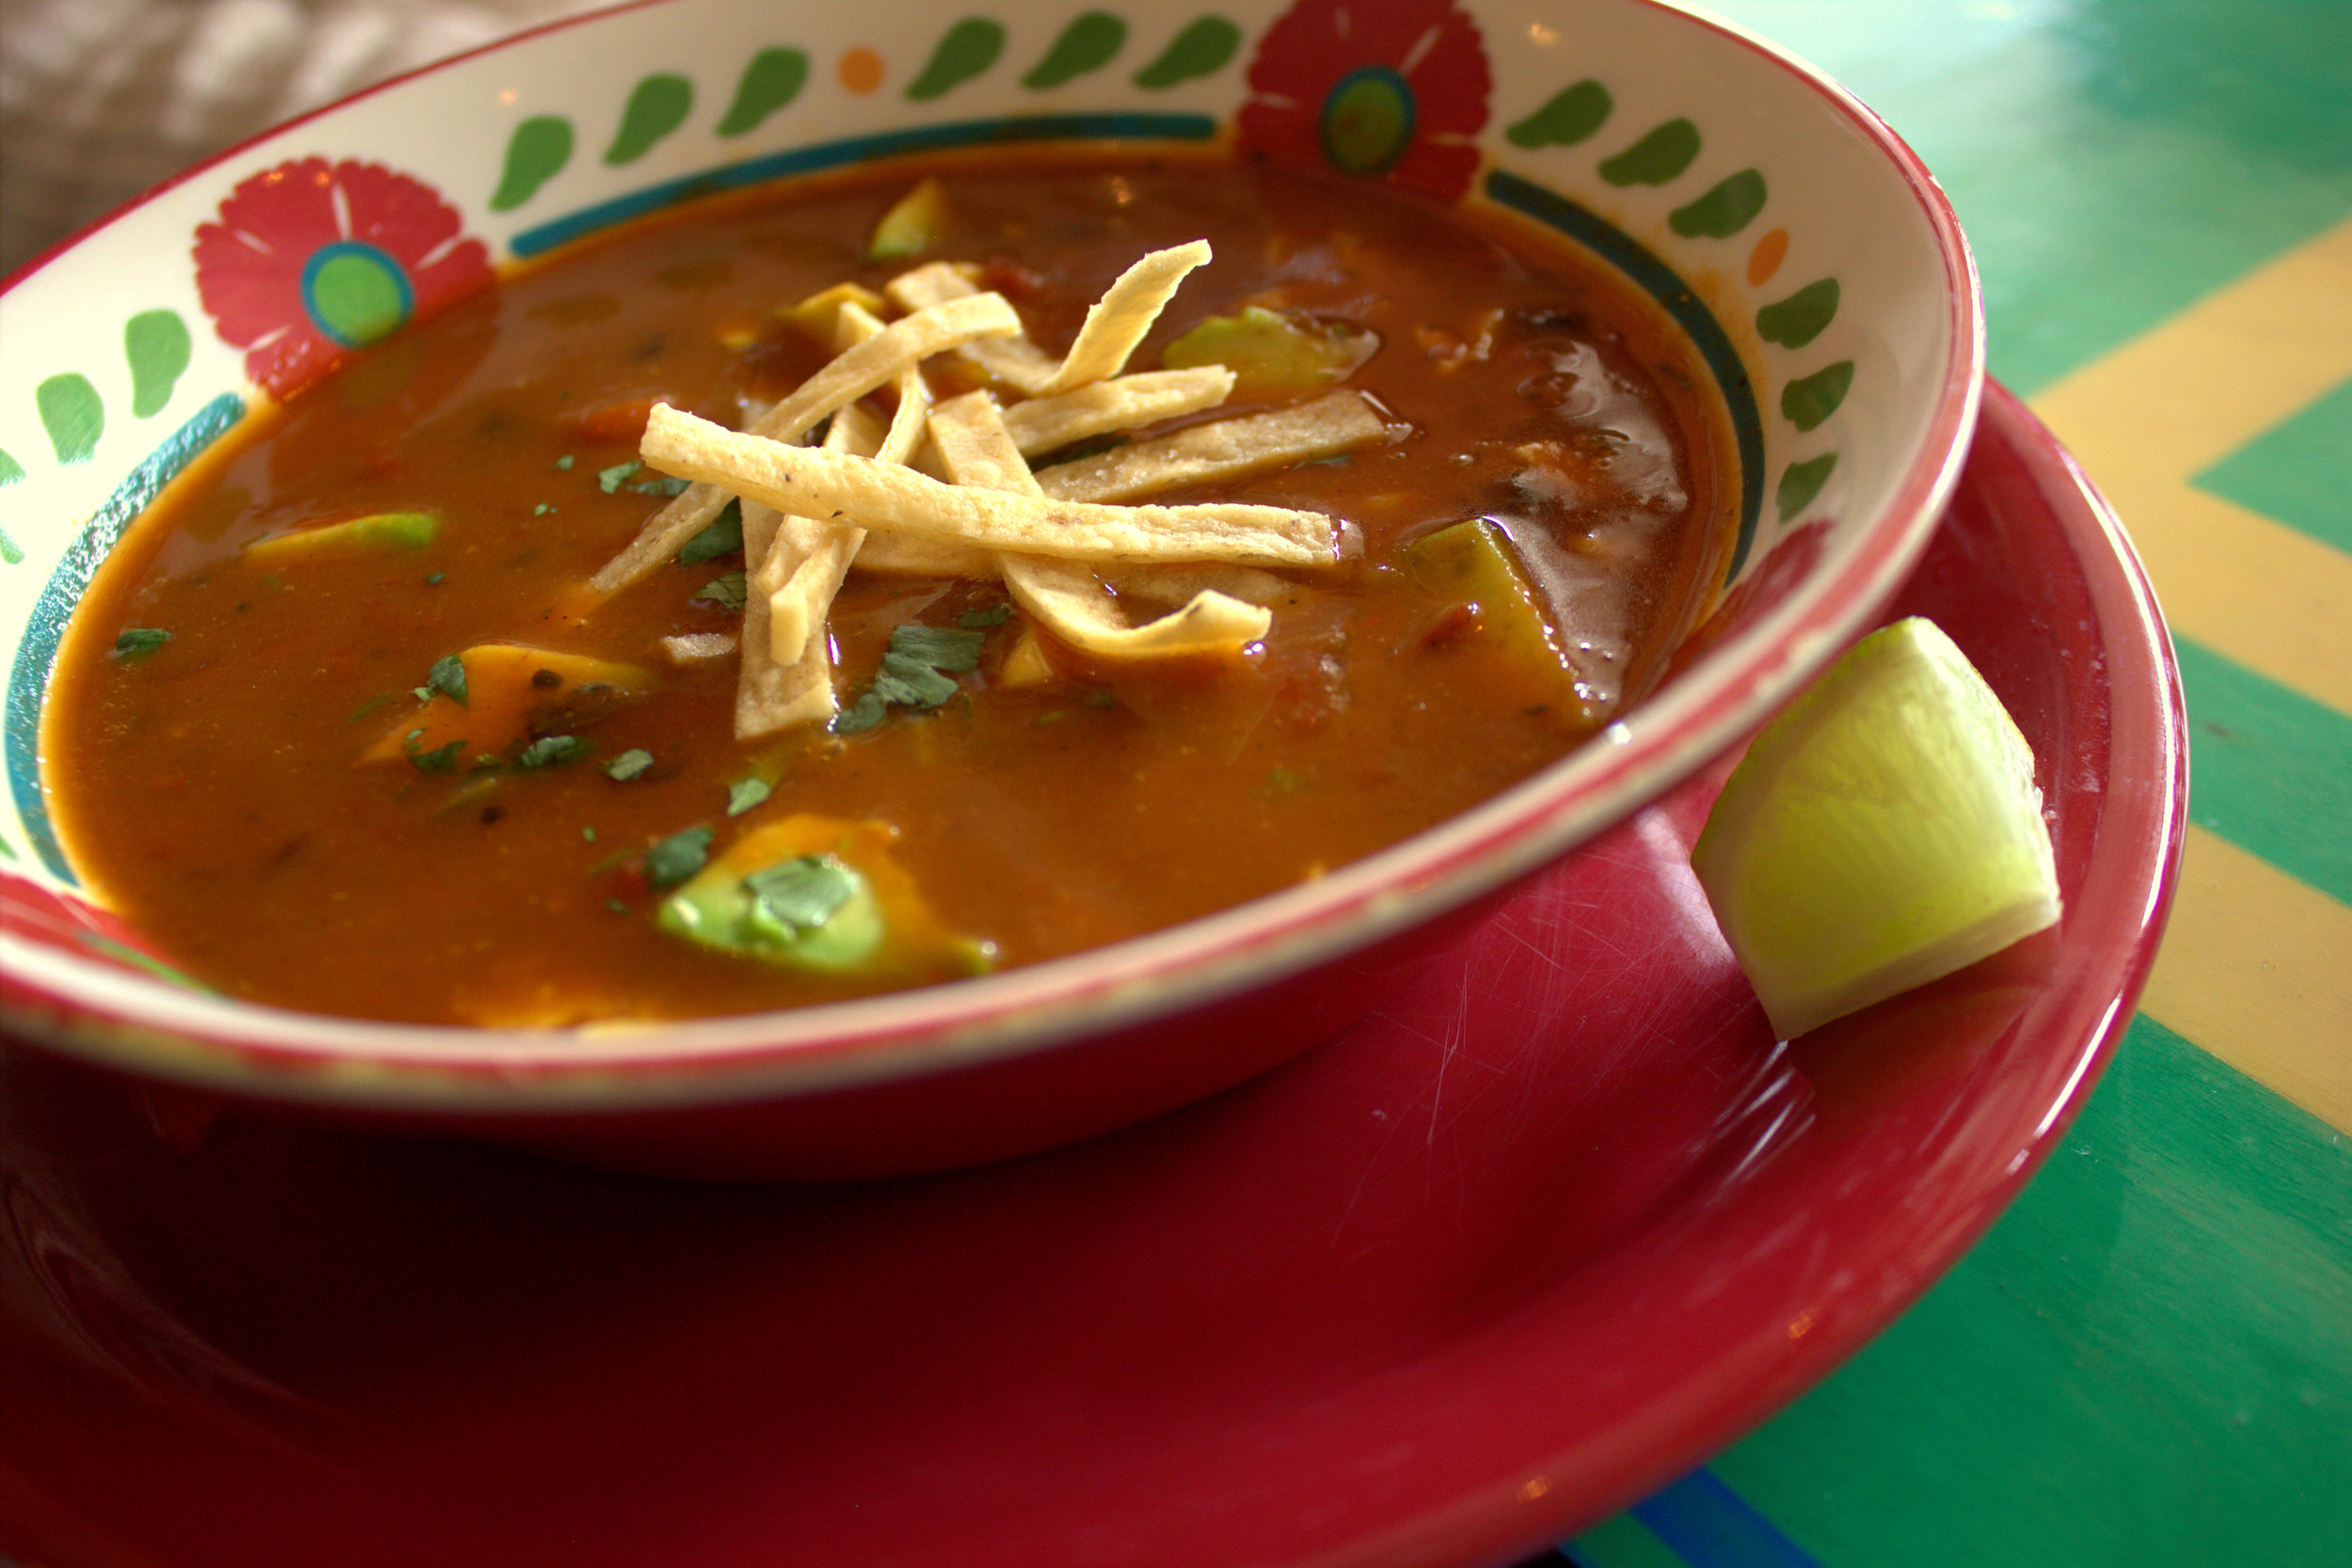 Tortilla soup, with fresh veggies and chunks of avocado